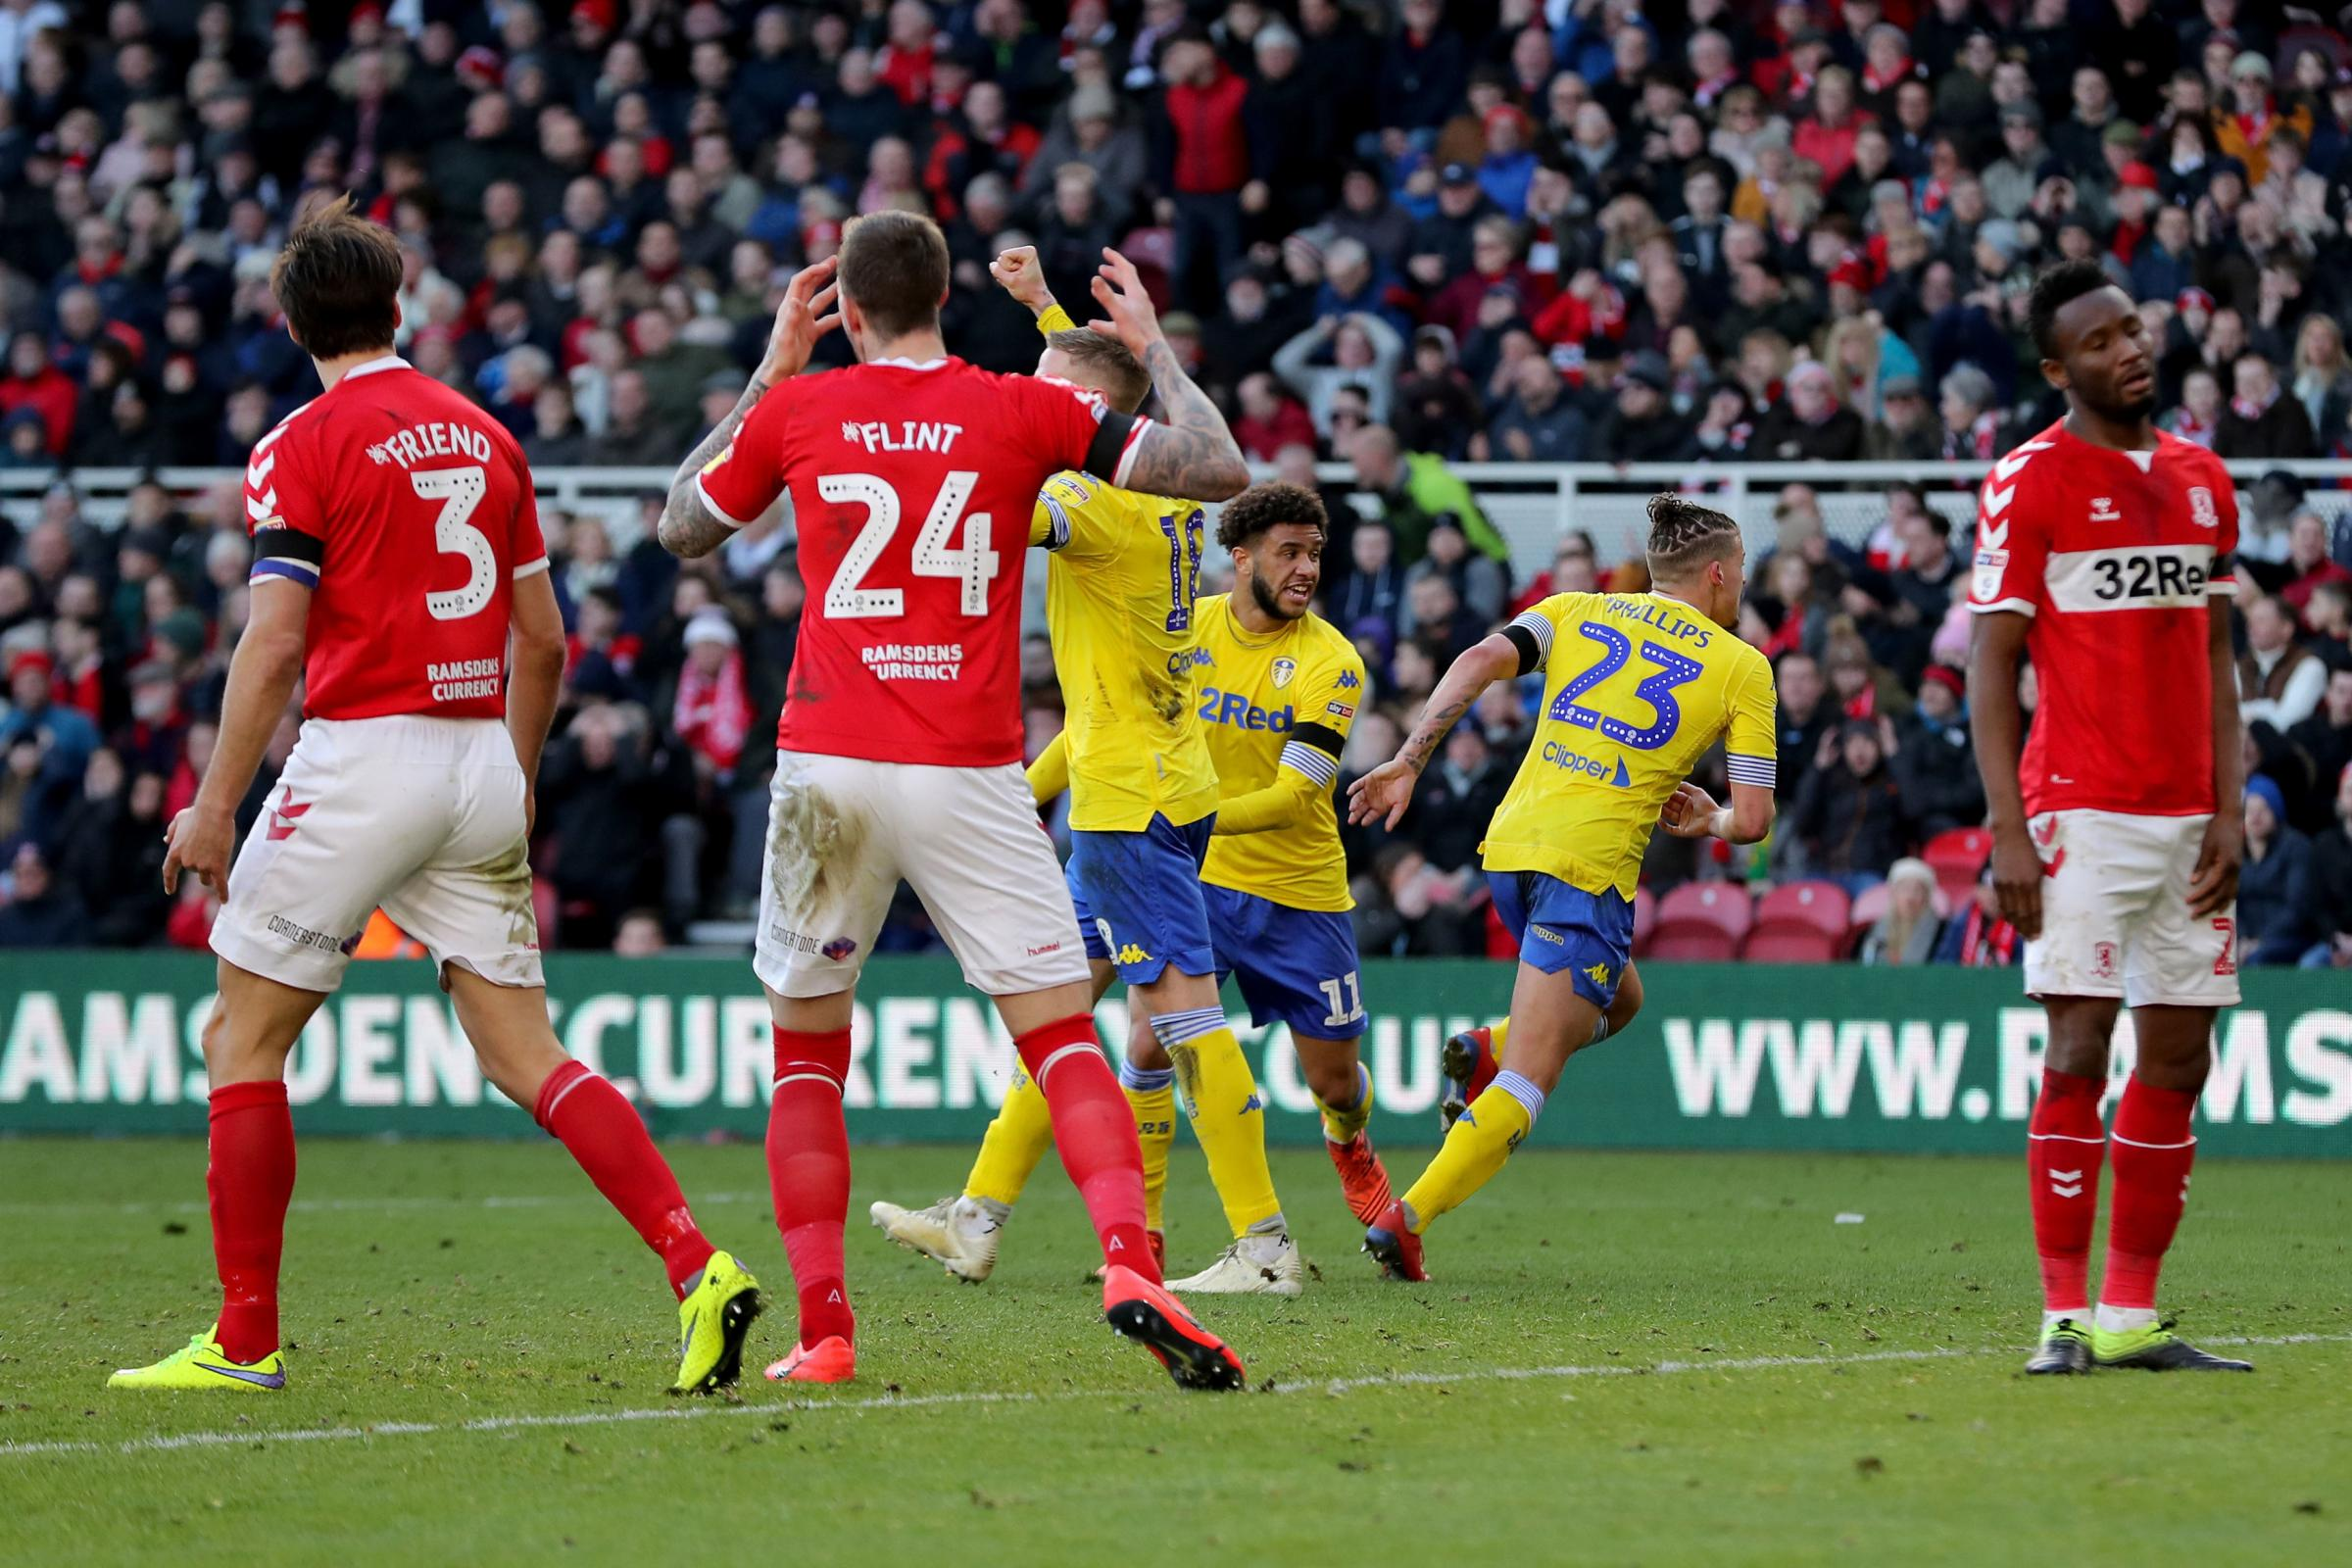 Tony Pulis reflects as Leeds snatch draw at Boro in 11th minute of stoppage-time